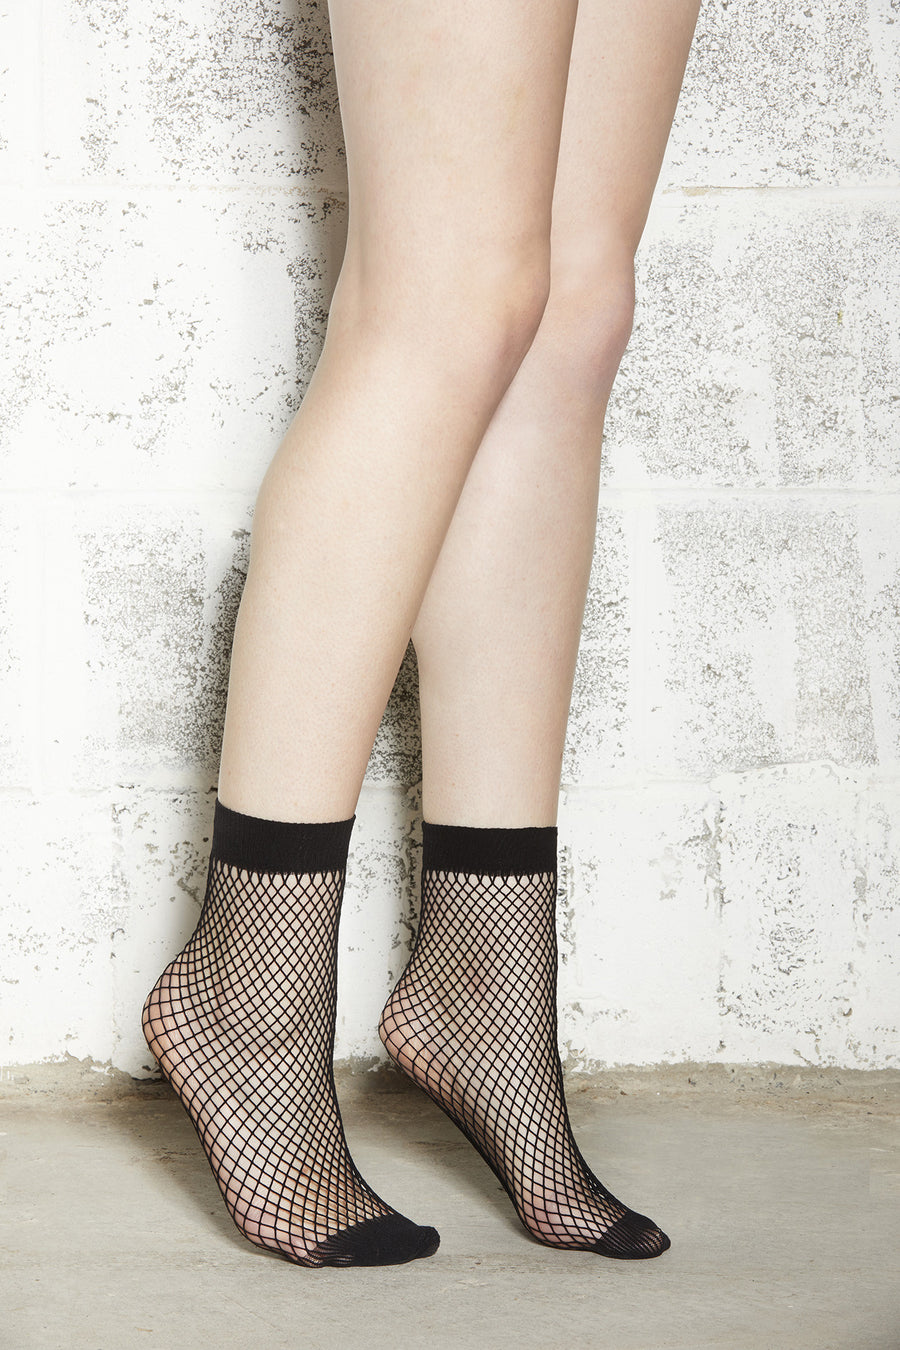 Black Medium Mesh Fishnet Ankle Socks Square